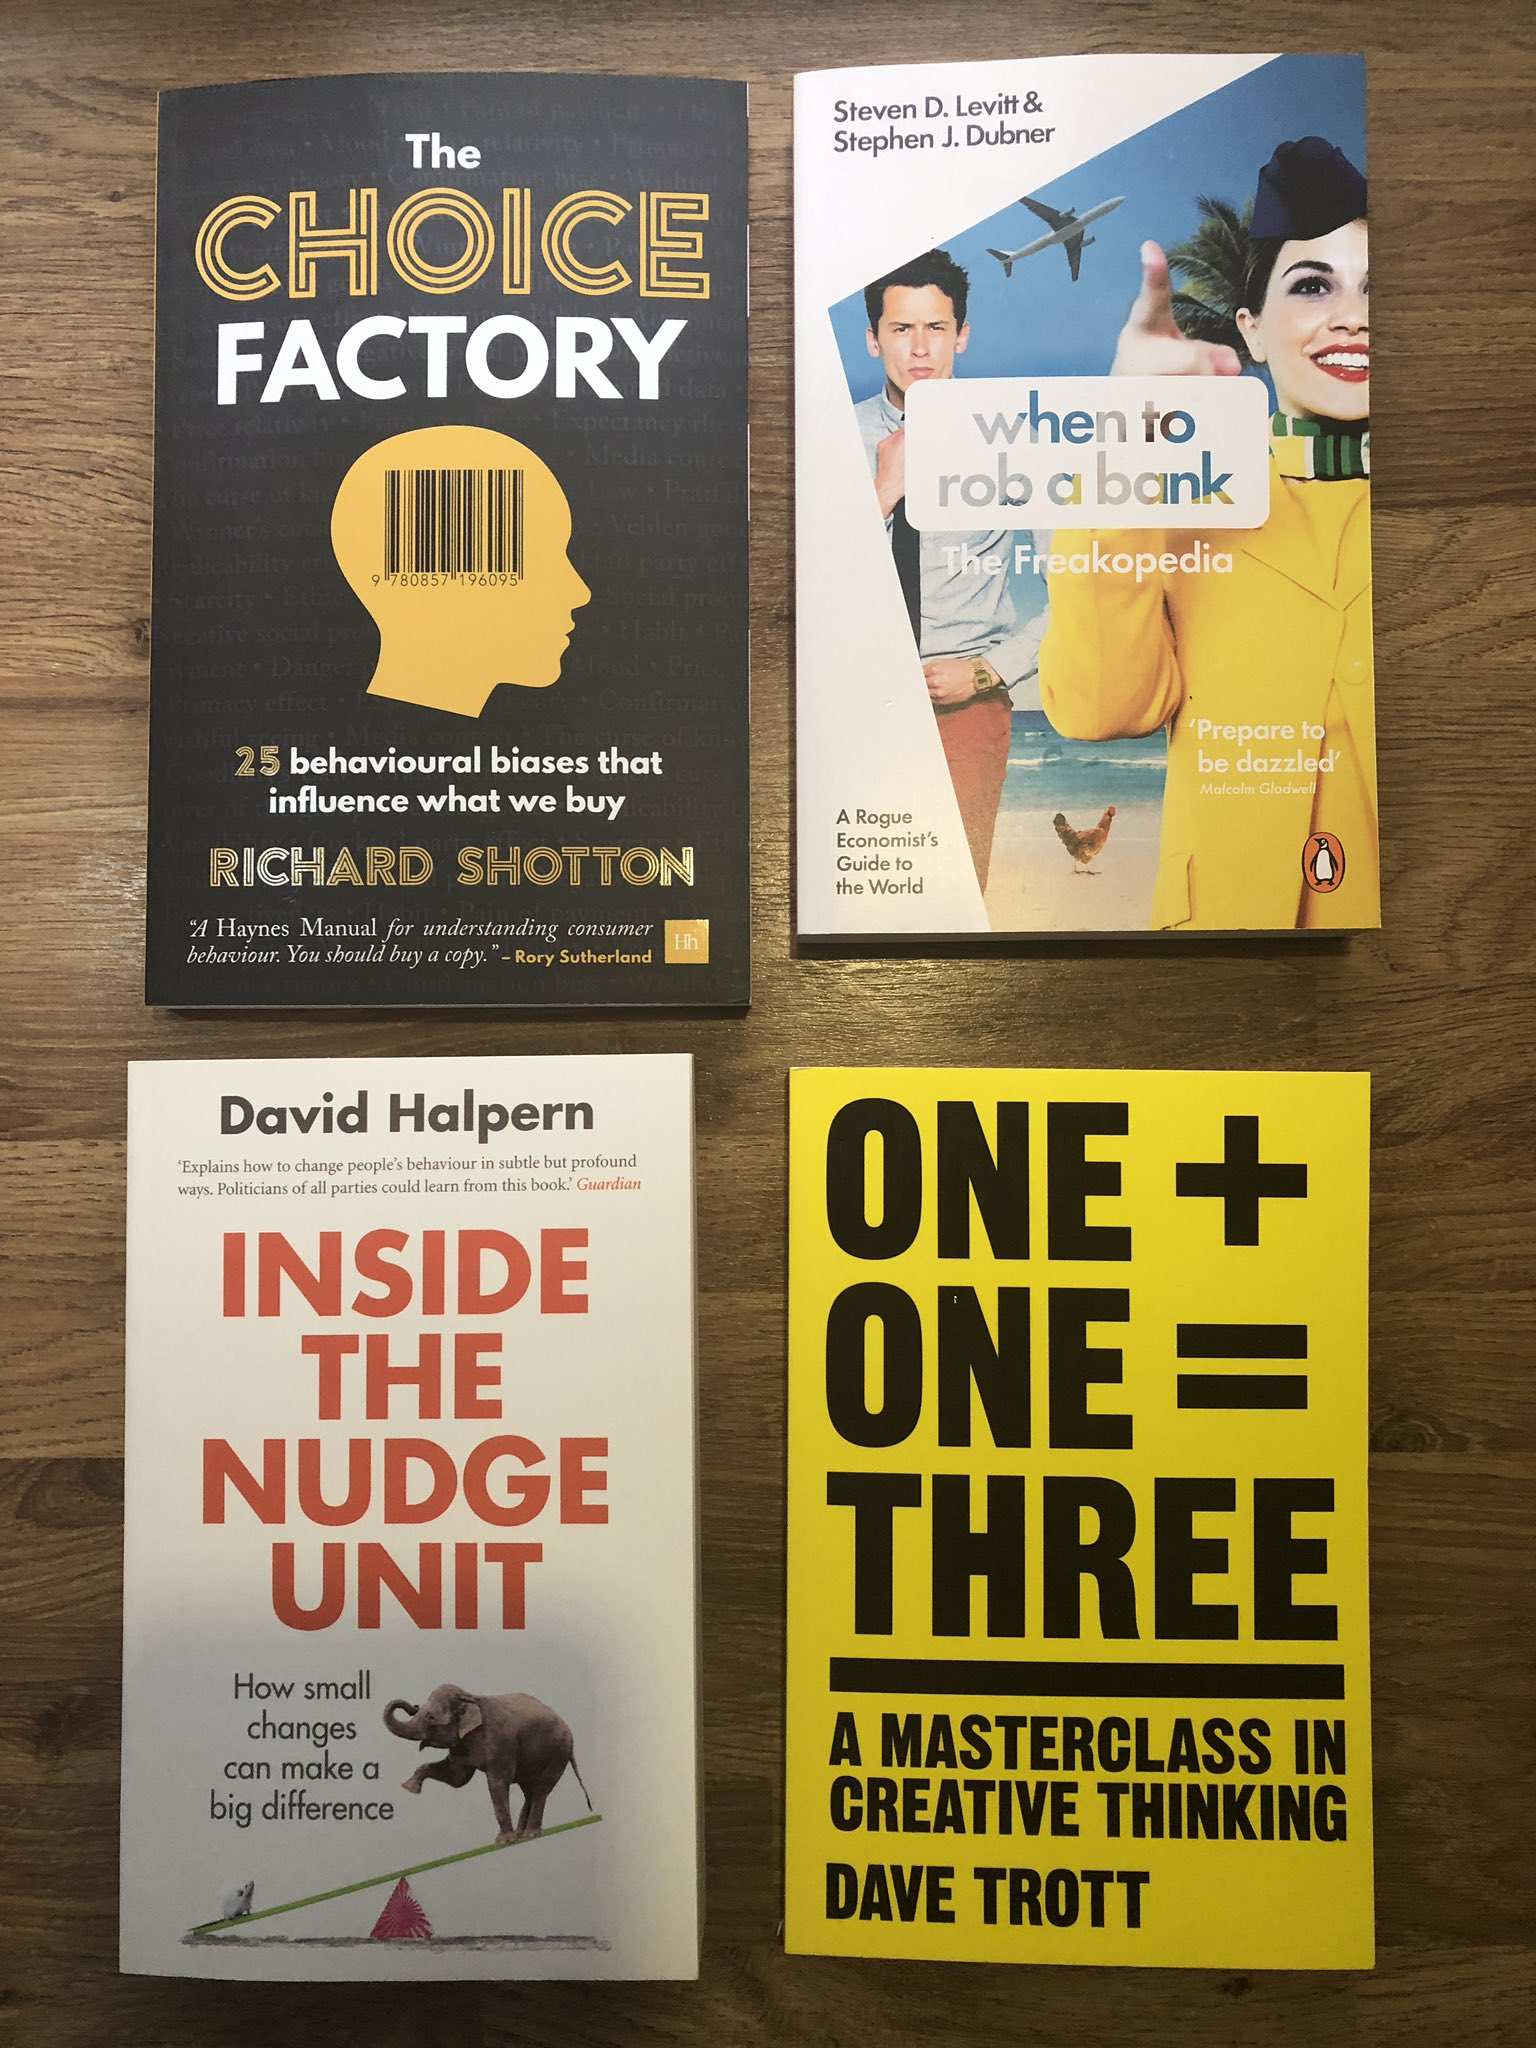 Buzzing for my Amazon delivery this morning. That's the next couple of months taken care of! @rshotton @davetrott https://t.co/ngXrzg1x0n